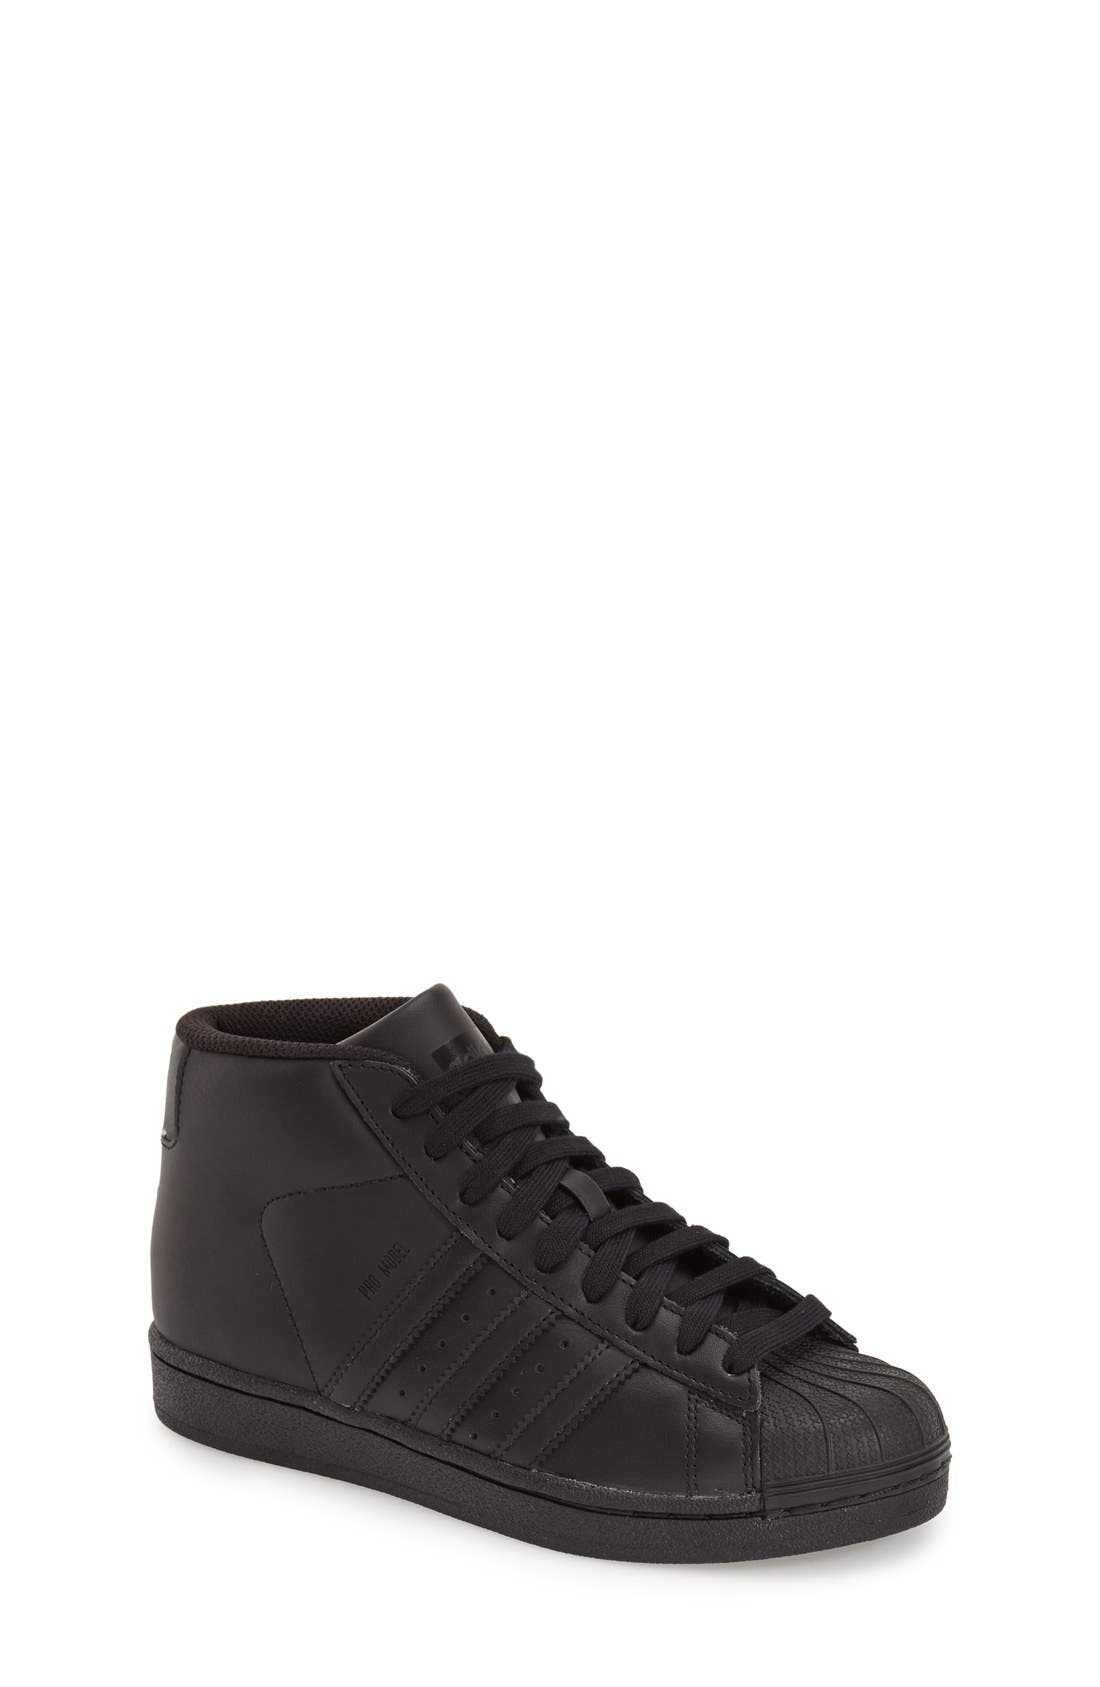 'Pro Model' High Top Sneaker,                             Main thumbnail 1, color,